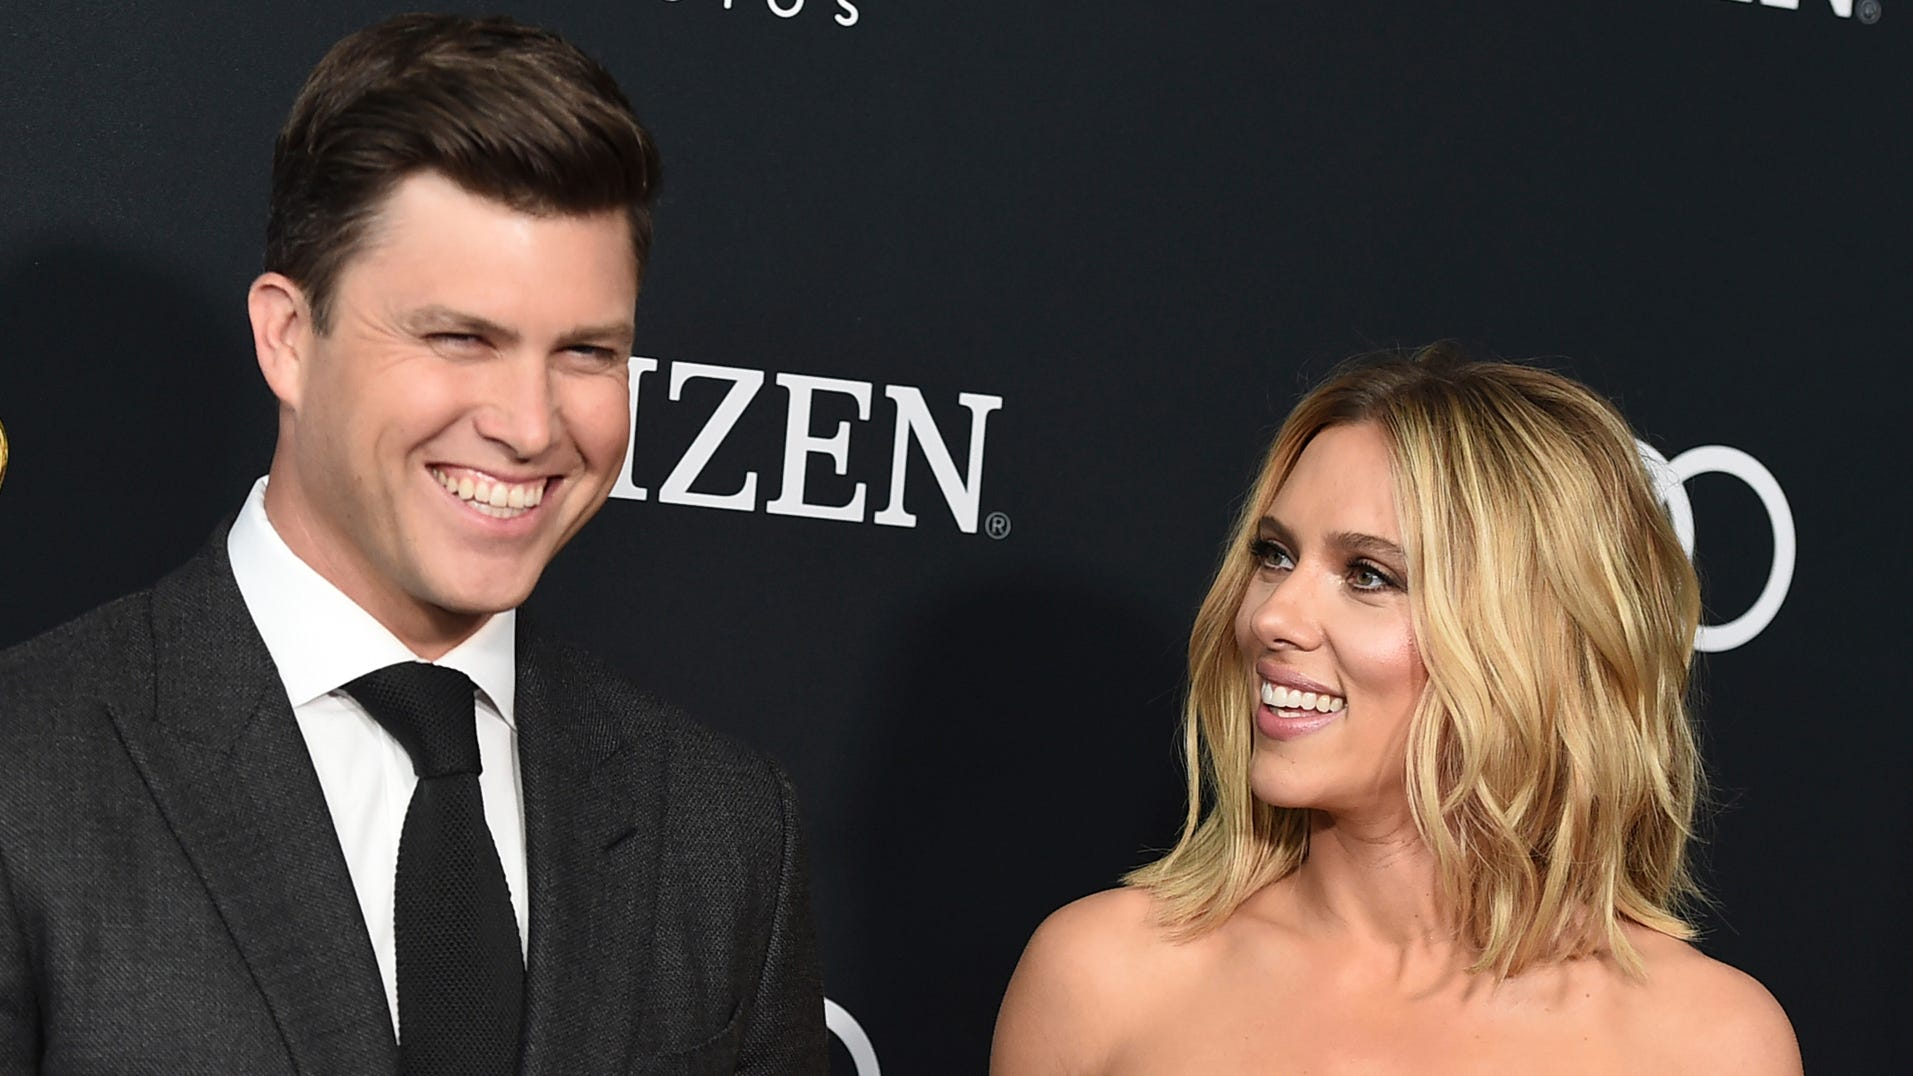 Scarlett Johansson And Snl Star Colin Jost Are Engaged